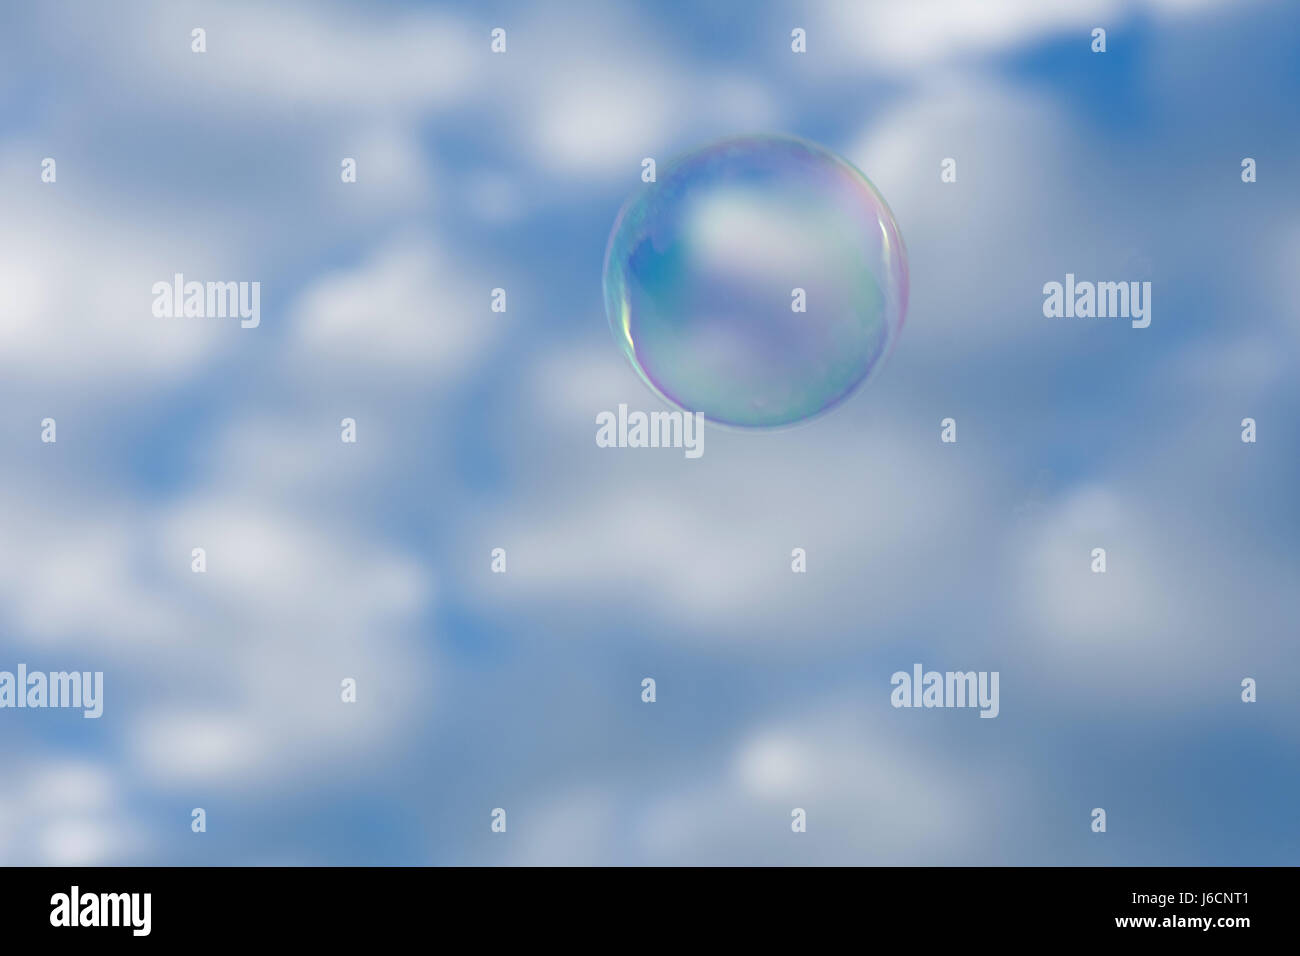 A bubble lifts into the blue and white sky. - Stock Image